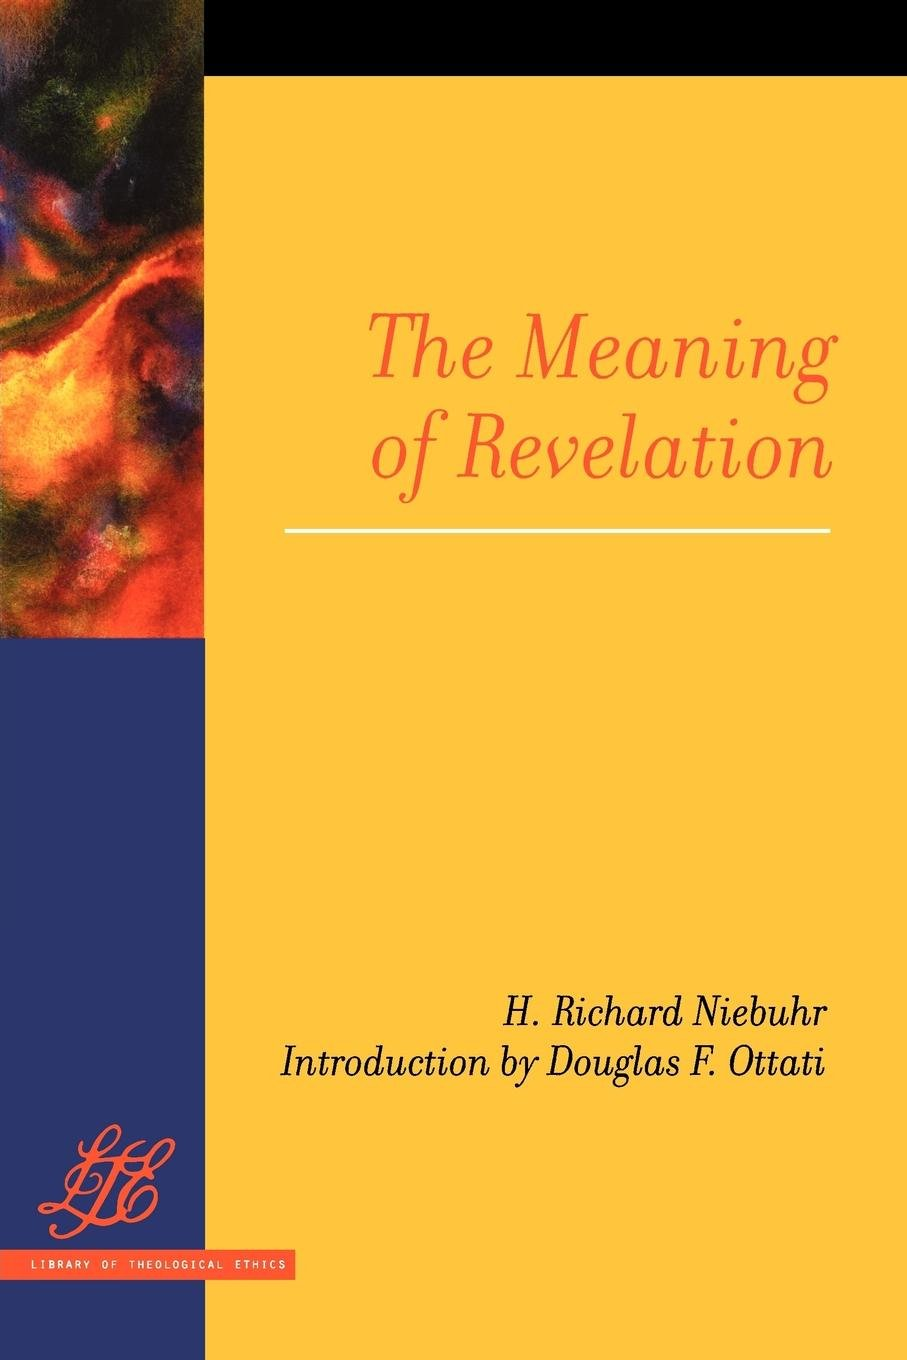 Download The Meaning of Revelation (Library of Theological Ethics) PDF